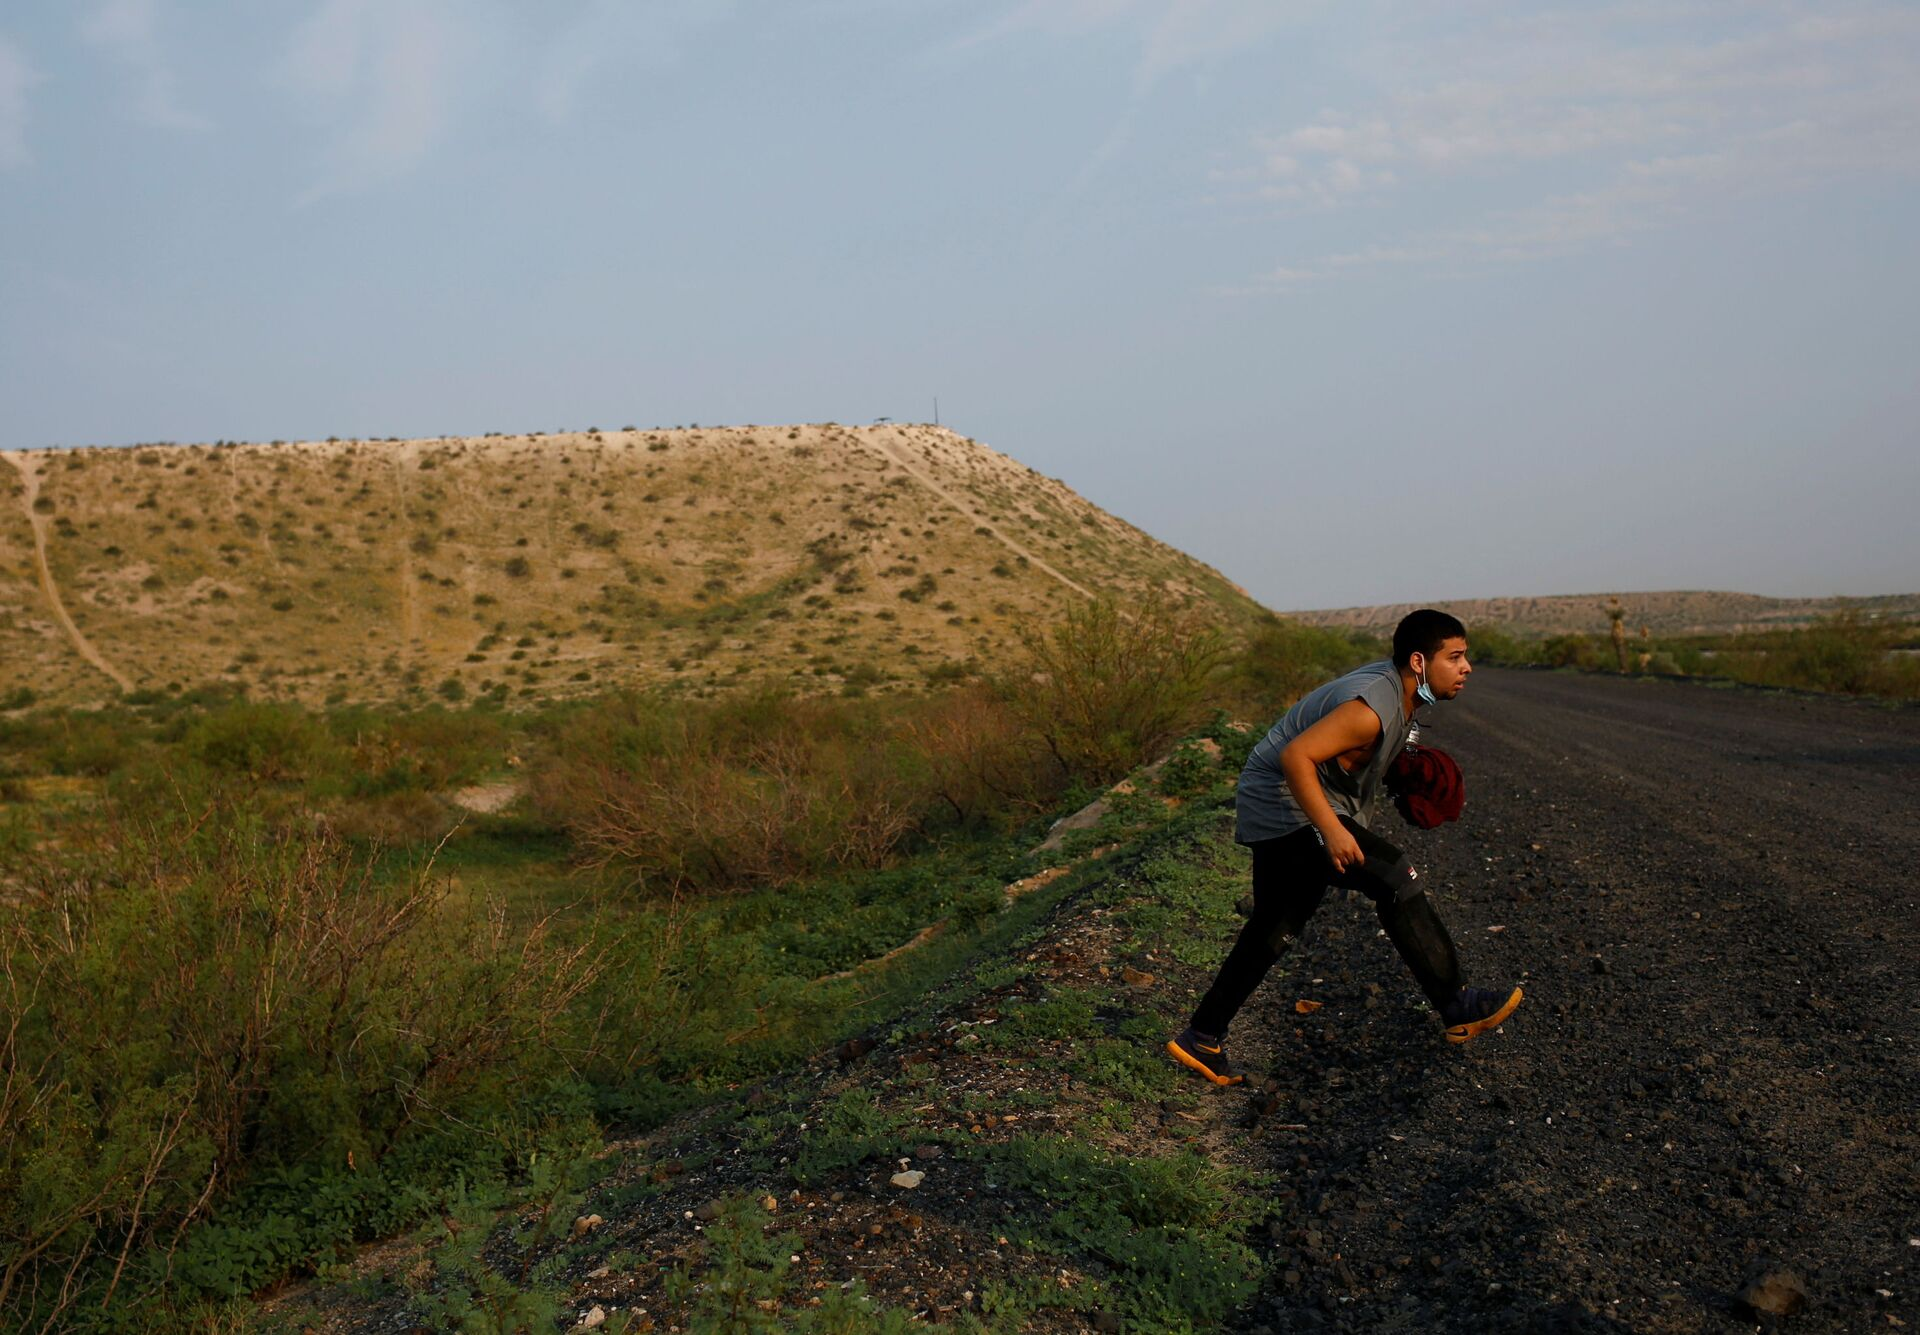 A migrant from Guatemala runs to hide from U.S. Border Patrol after crossing into the United States from Mexico, in Sunland Park, New Mexico, U.S., July 22, 2021 - Sputnik International, 1920, 07.09.2021